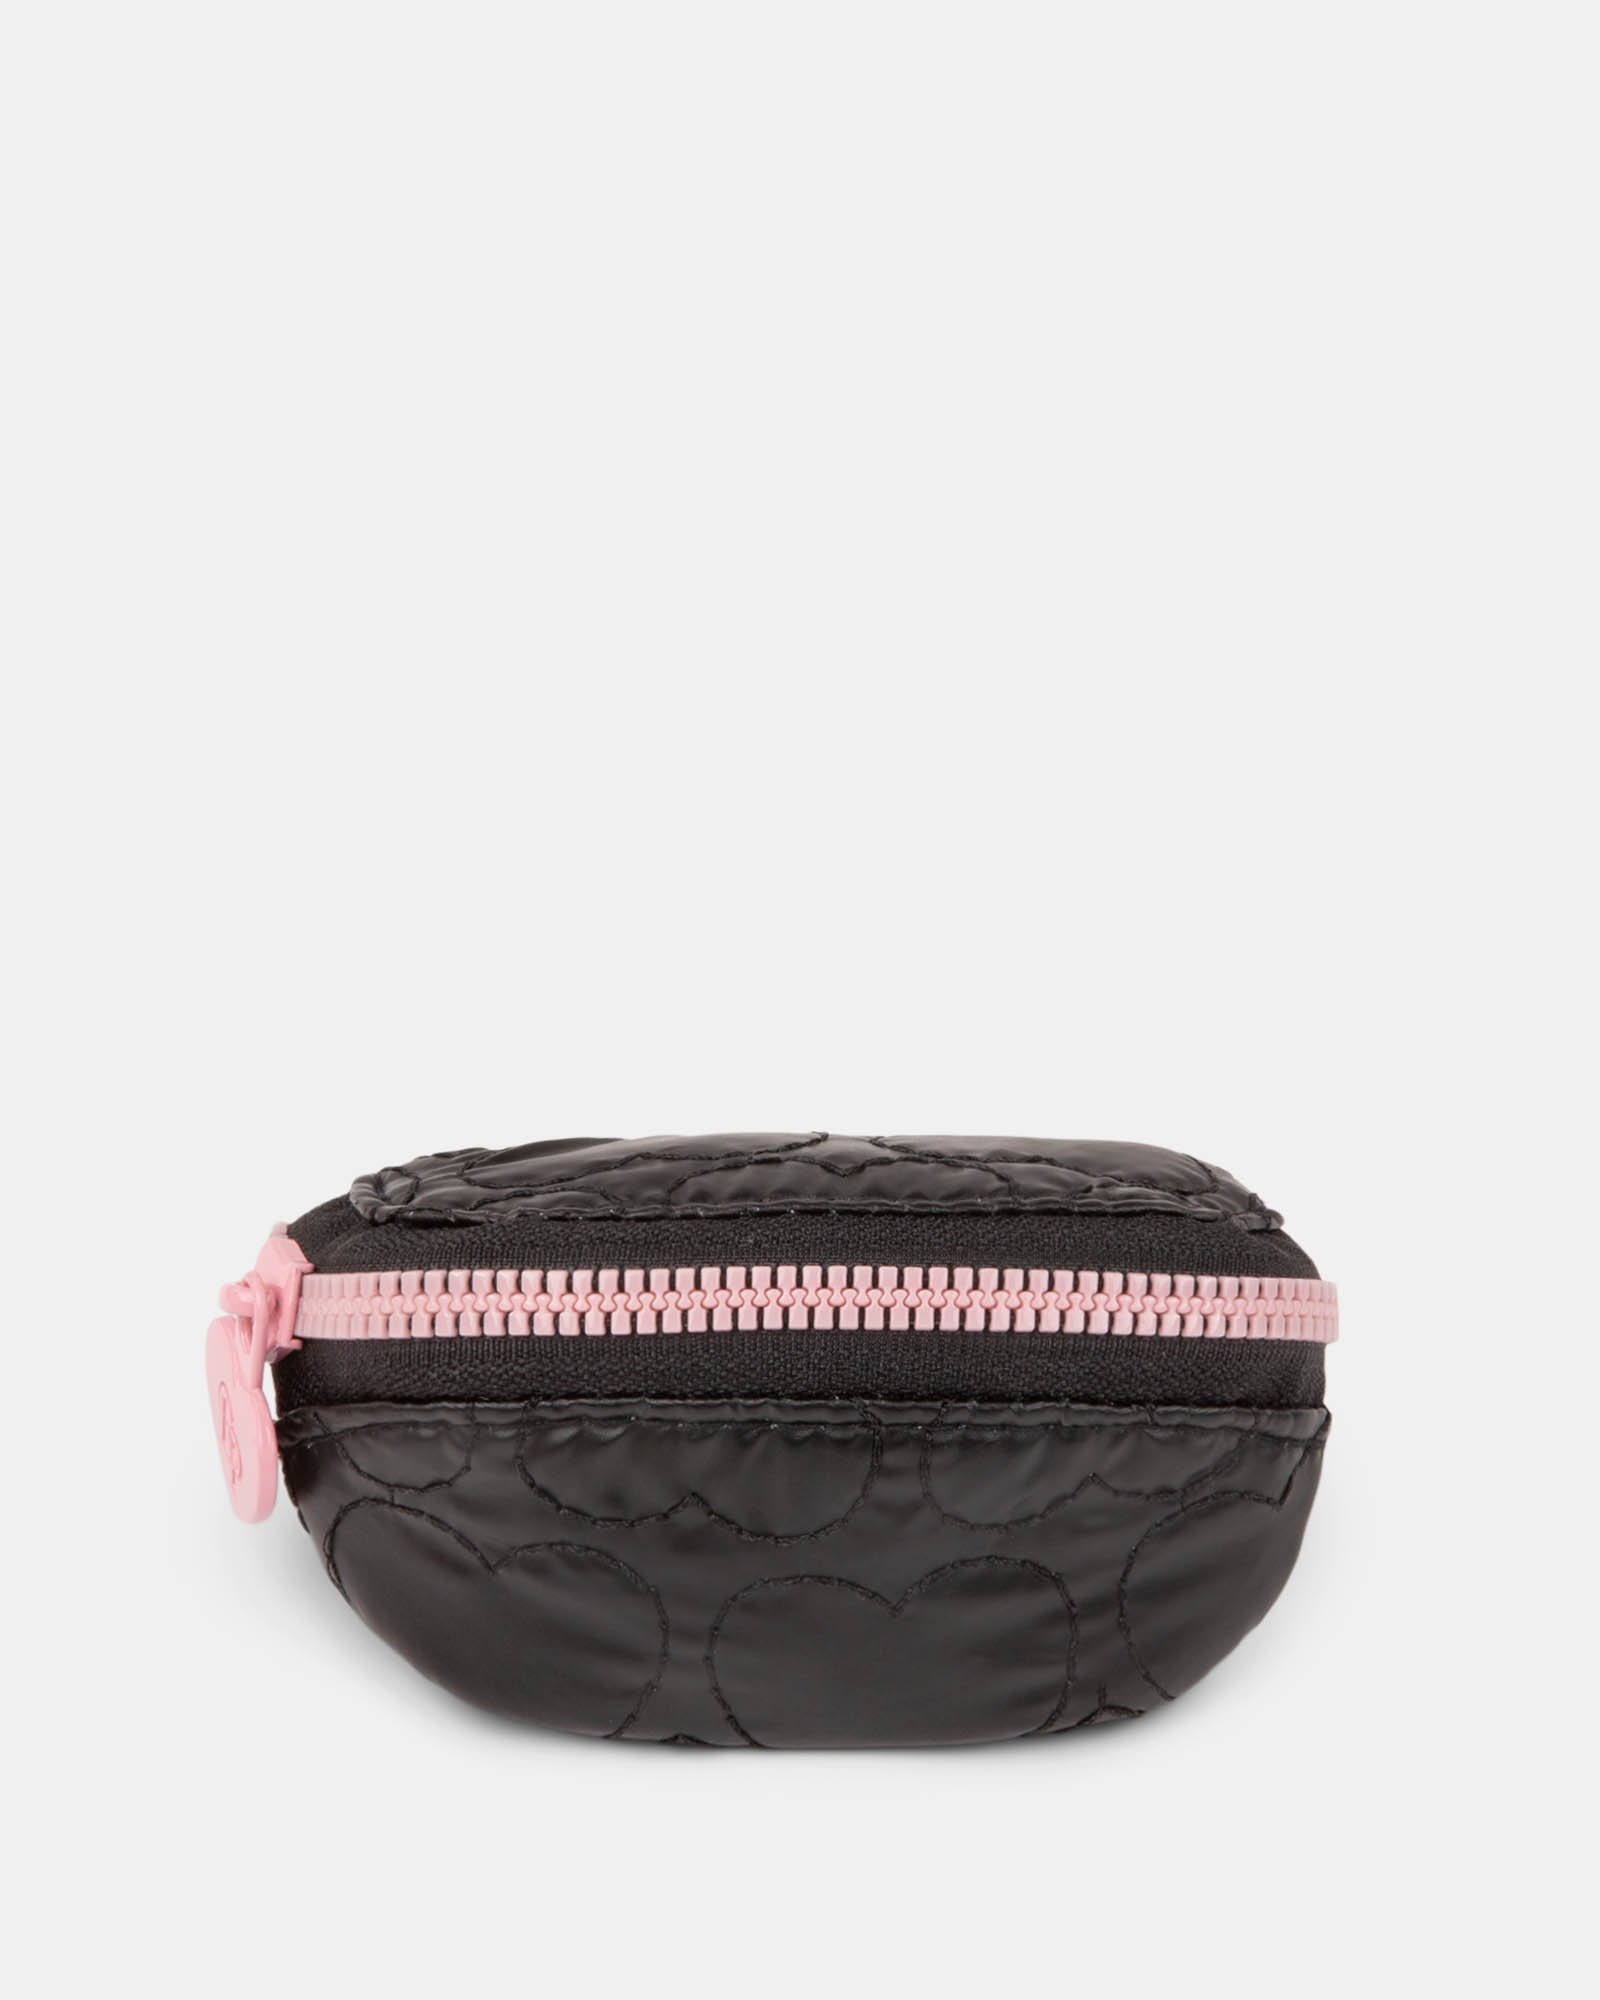 BLACKPINK - Be Still My Heart Collection - Stand out from the crowd with this cute wrist pouch - black - BLACKPINK - Zoom